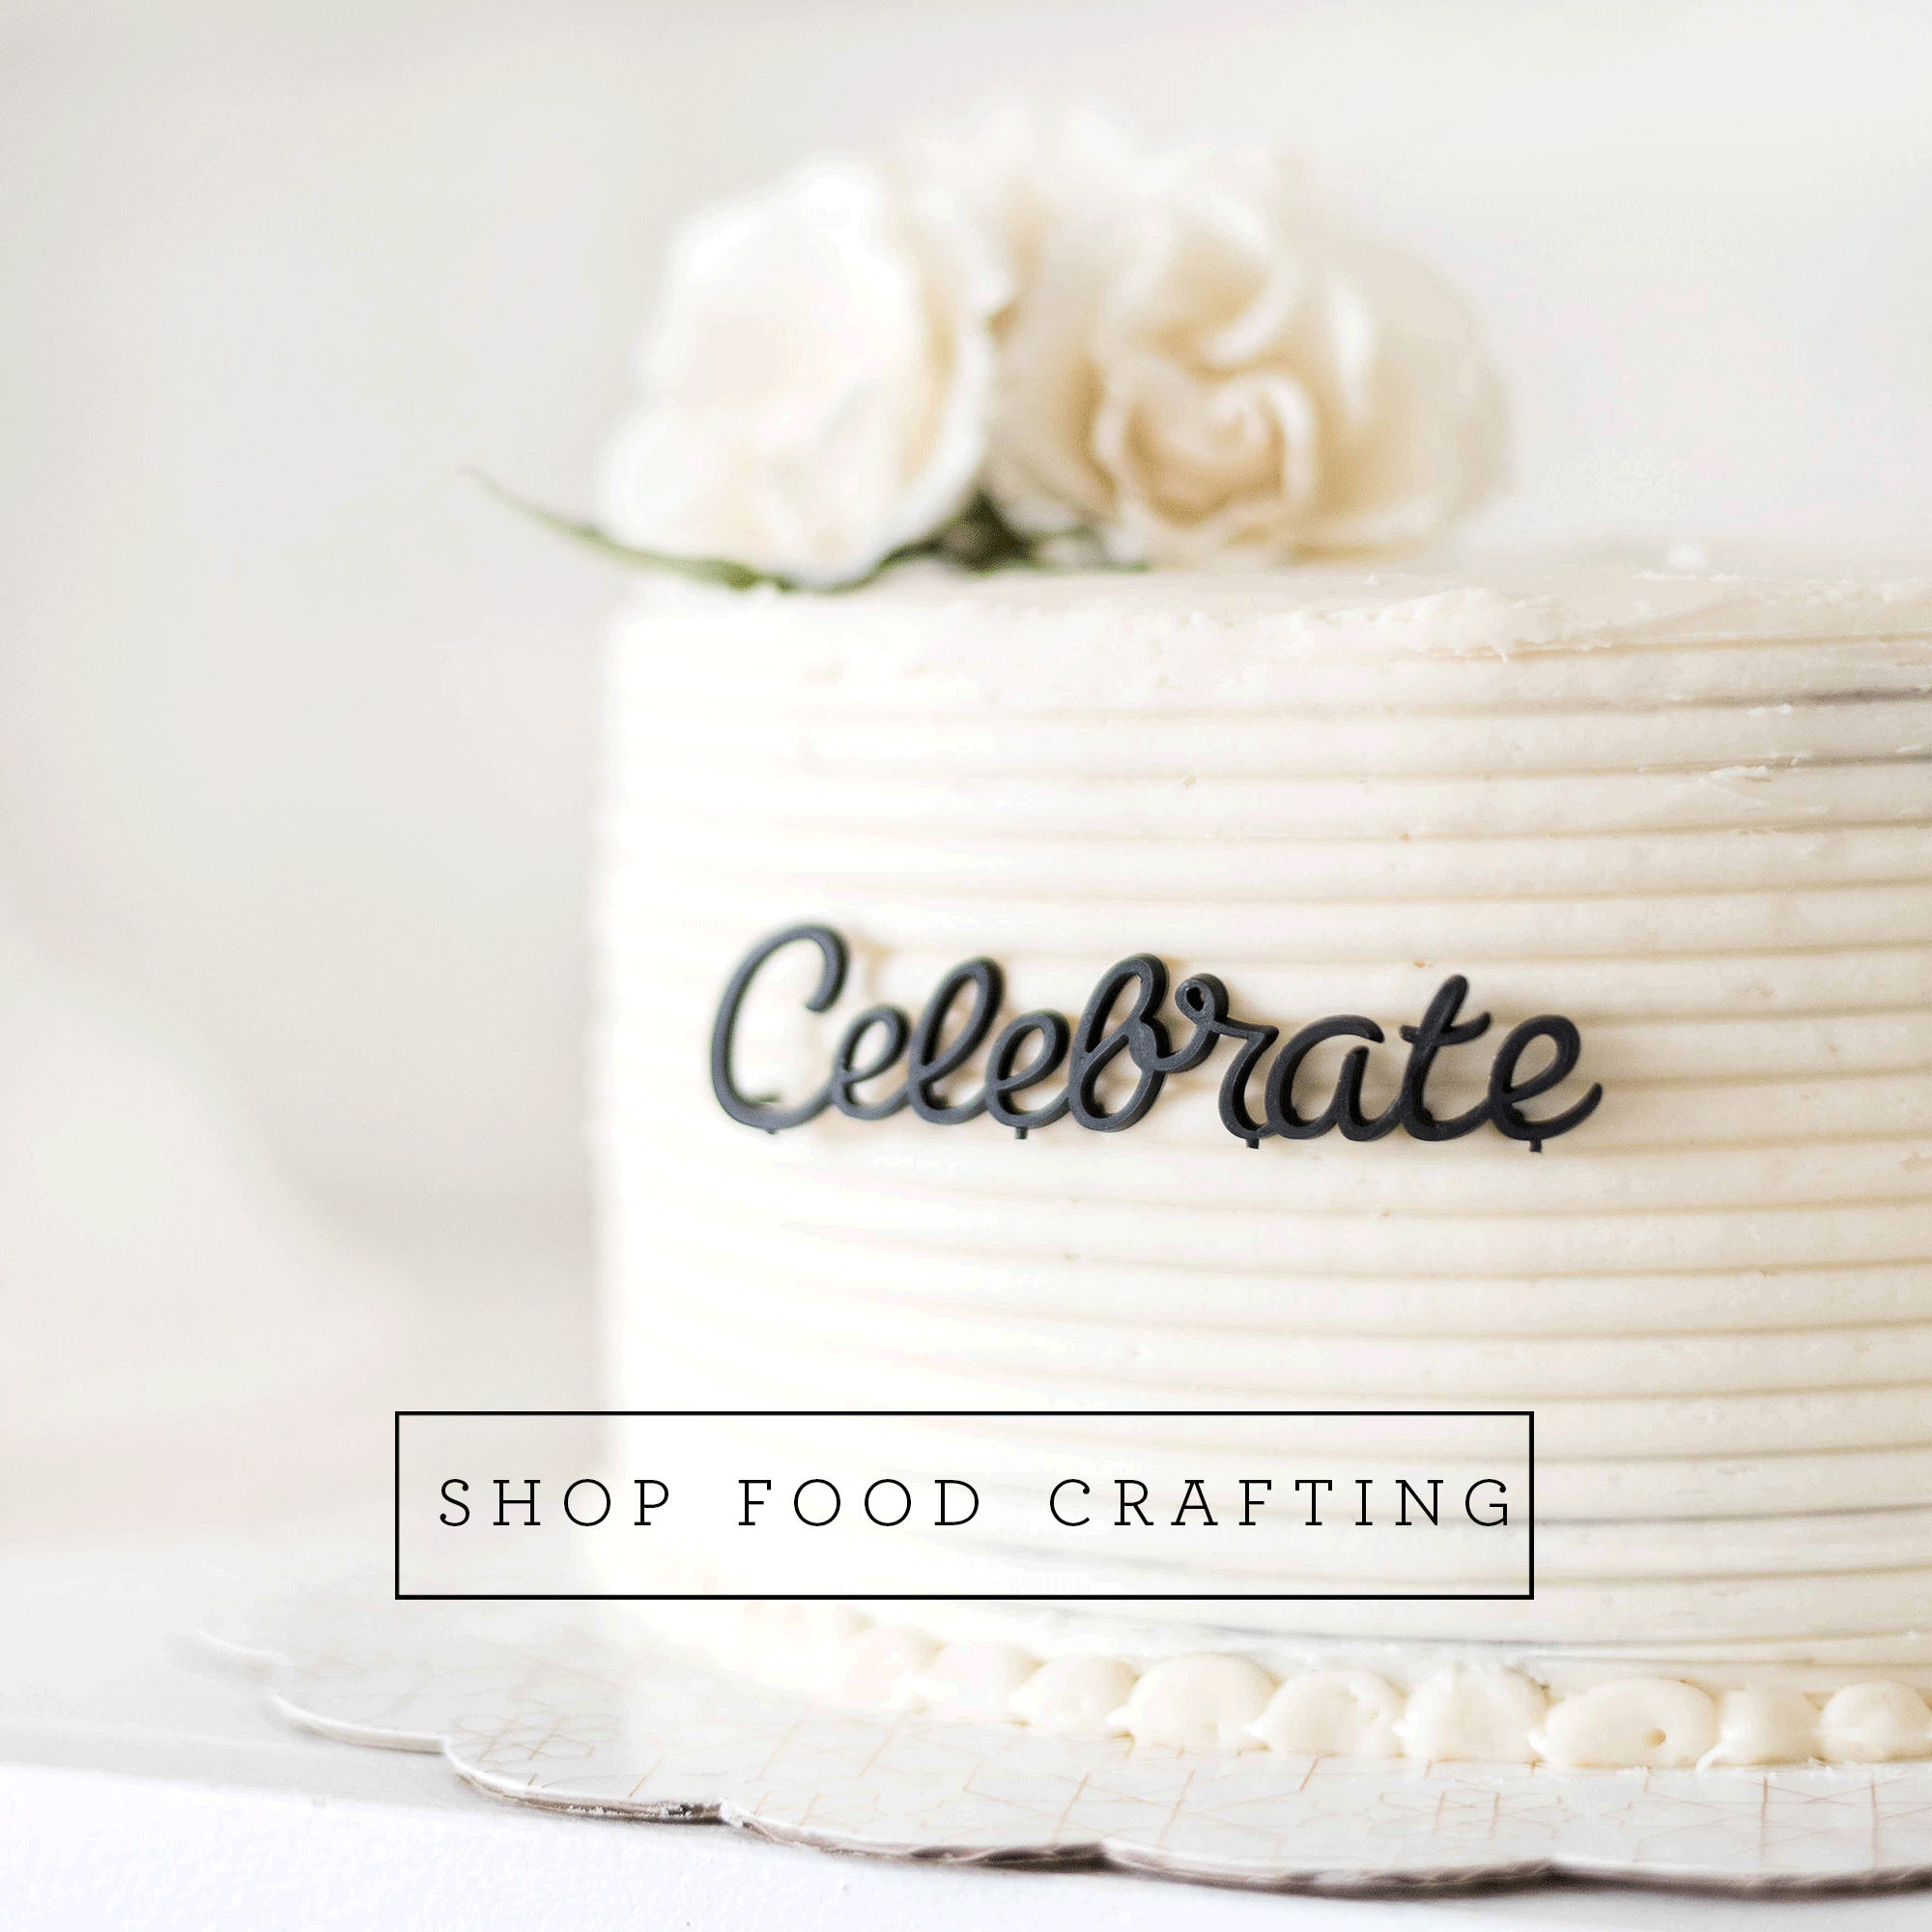 AC-SHOP-FOOD-CRAFTING-